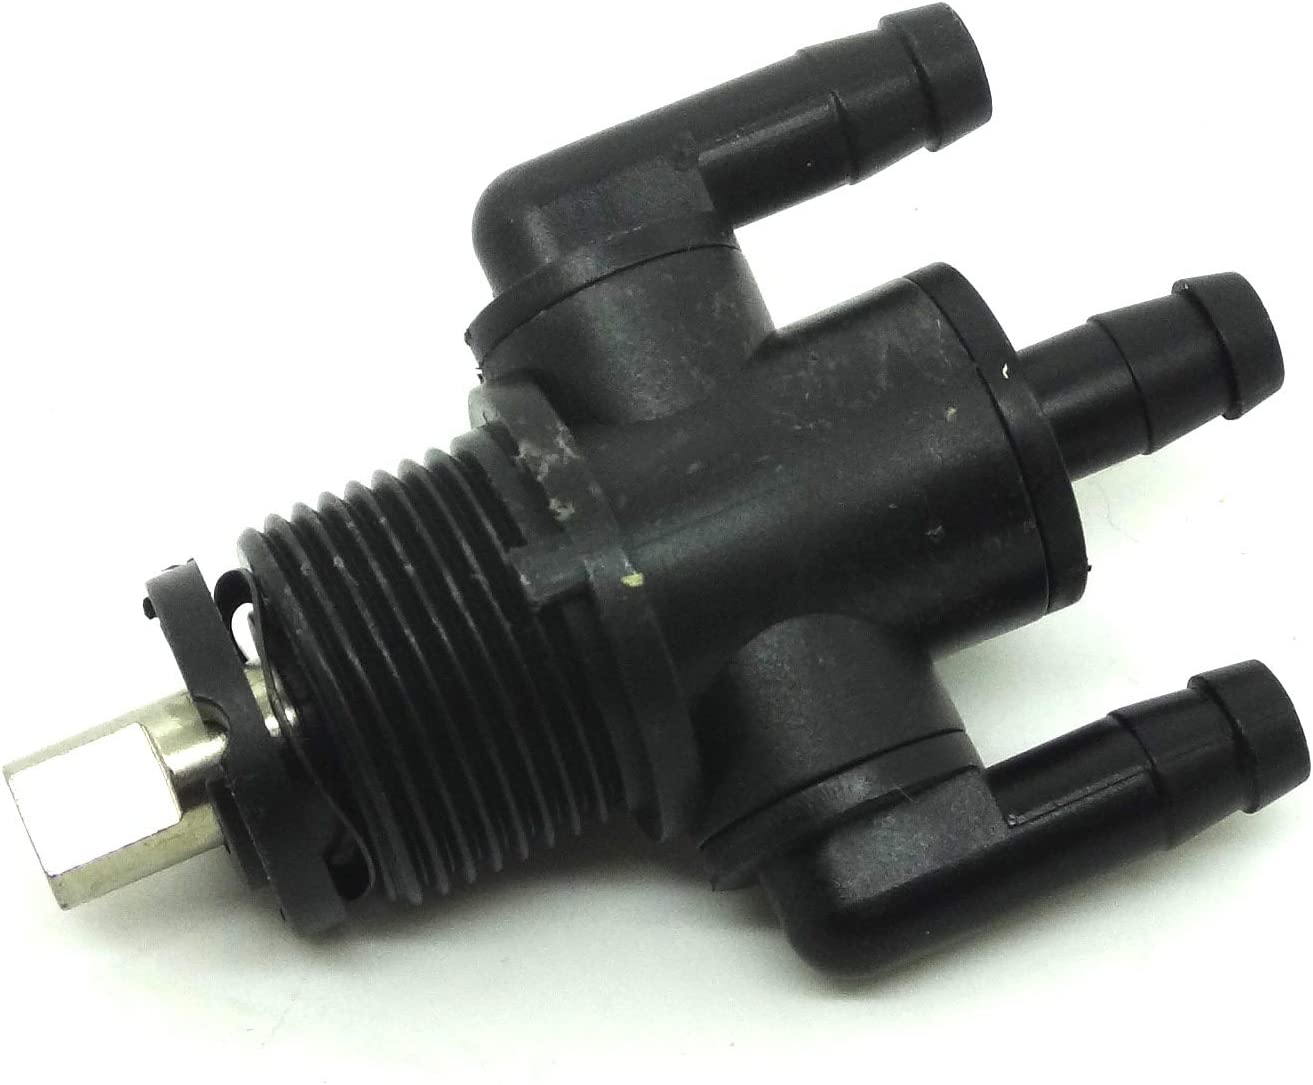 Fuel Pump Petcock For Polaris Sportsman 325 1999 2000 ATV